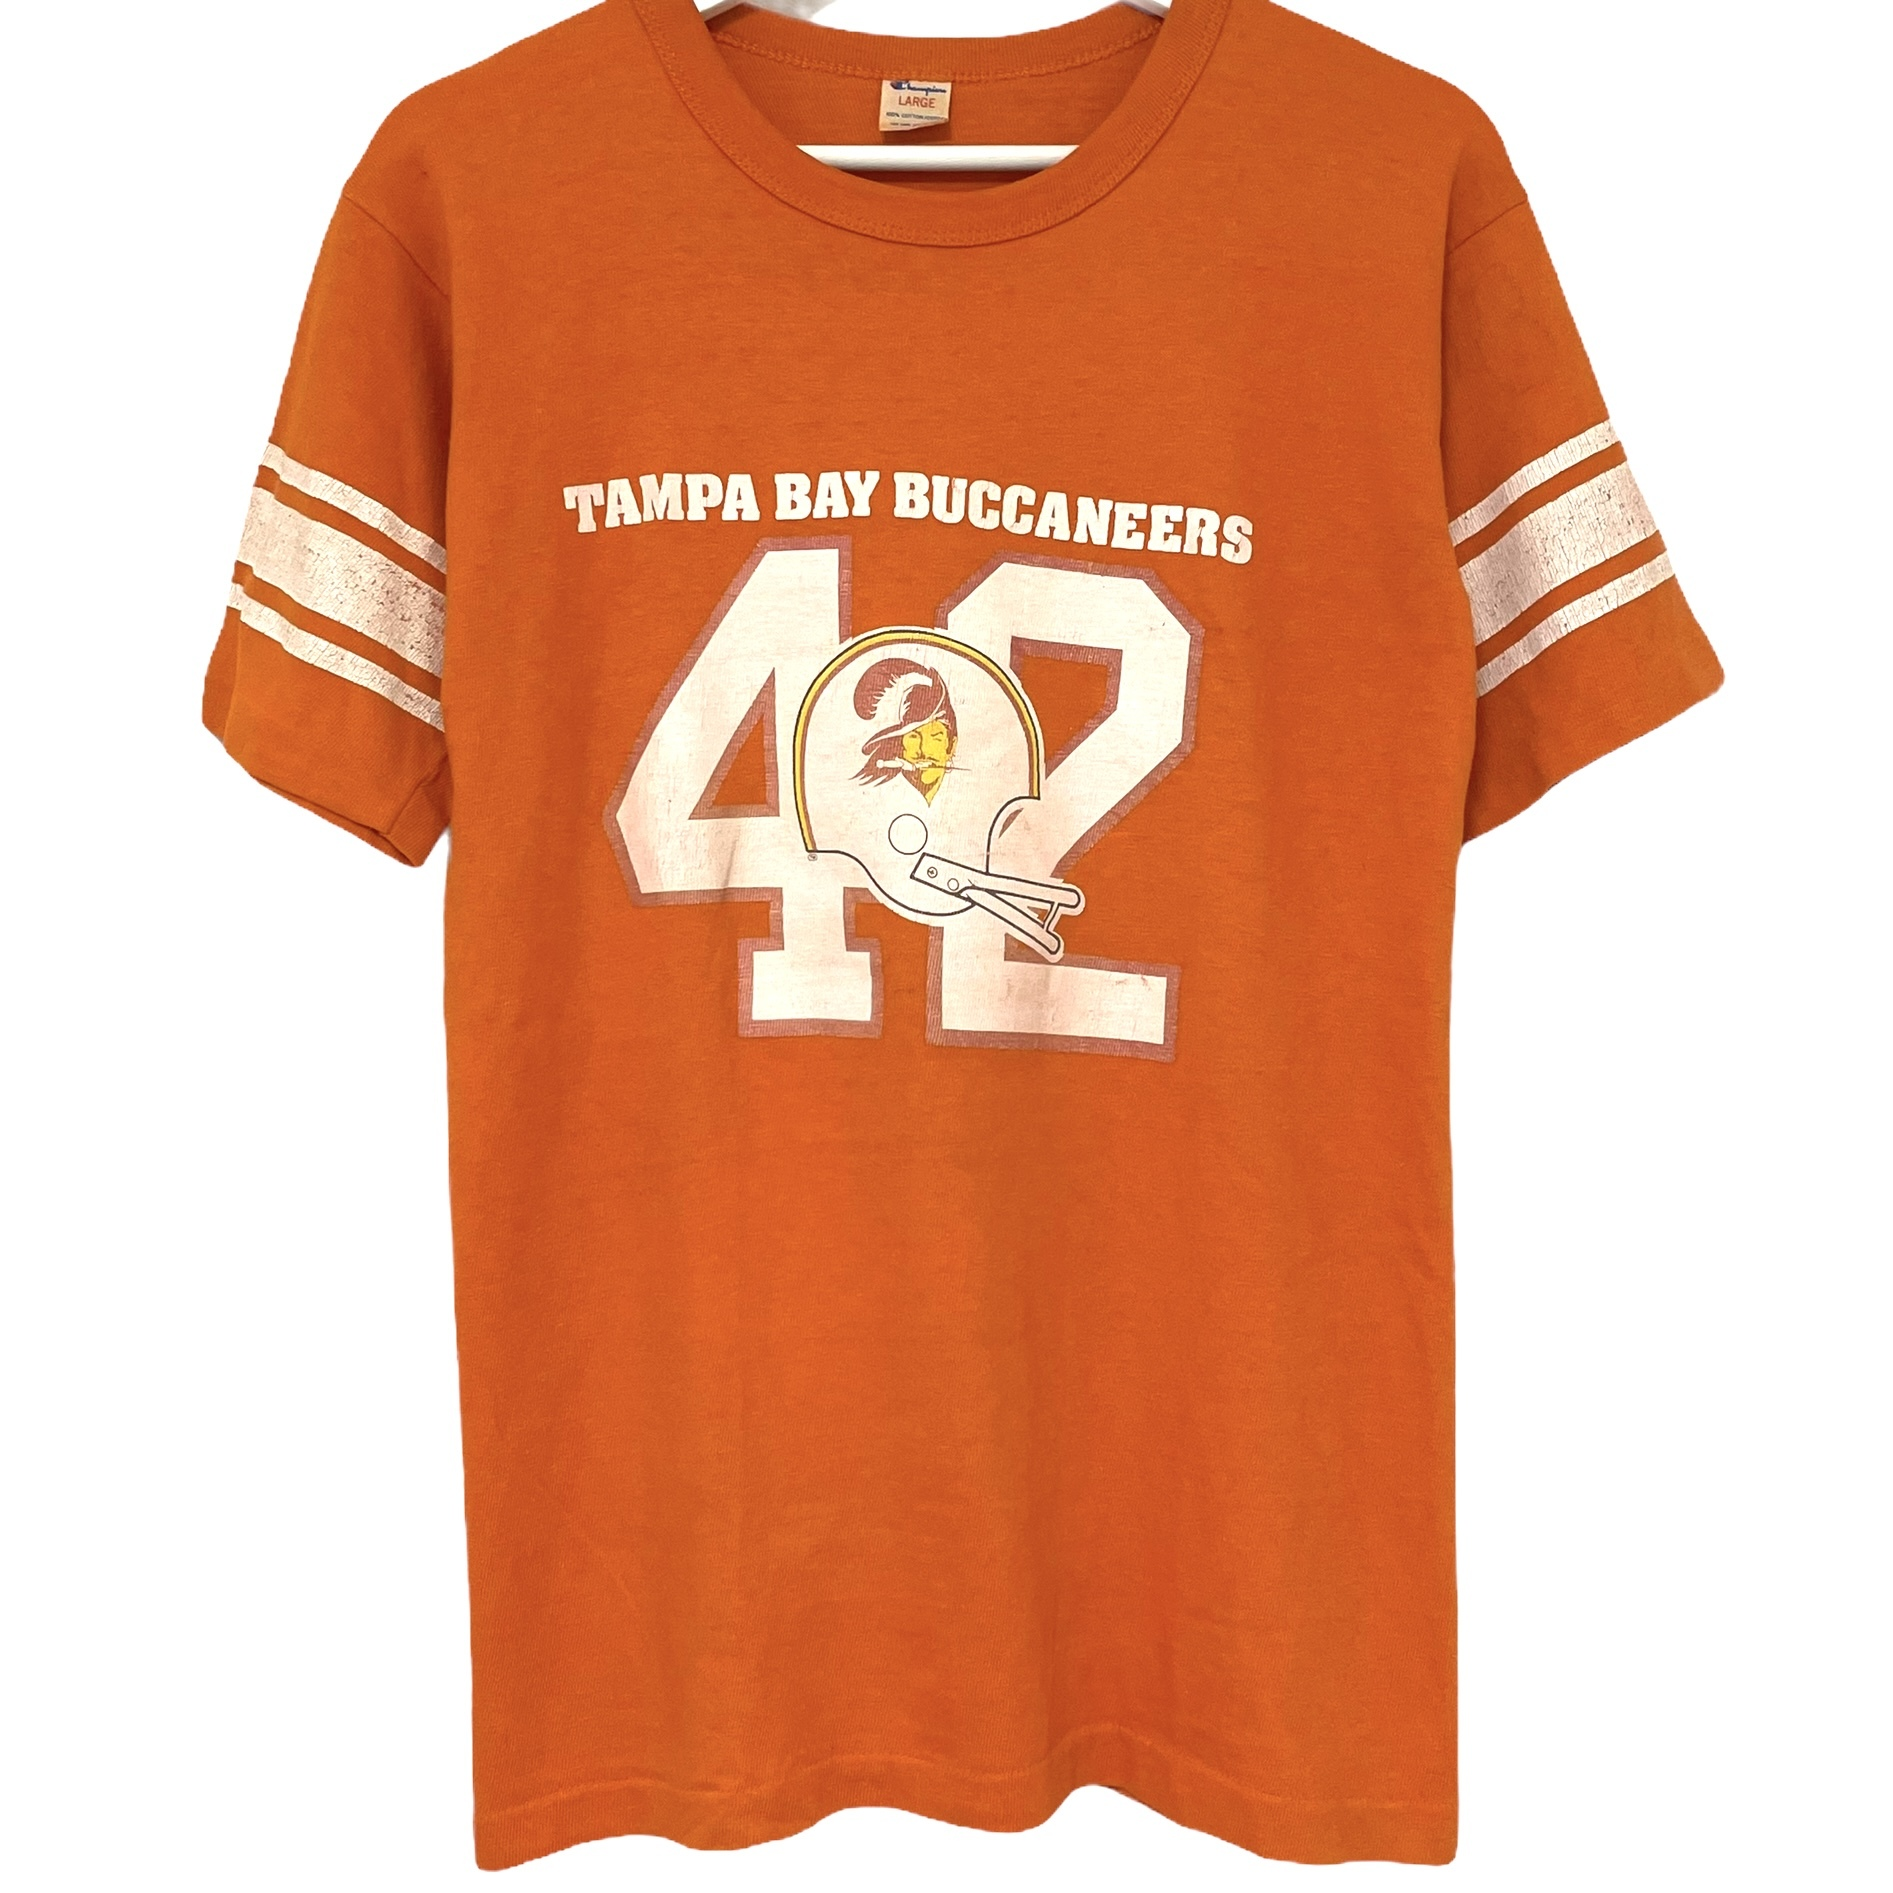 70's Champion Football T TAMPA BAY BUCCANEERS【L】